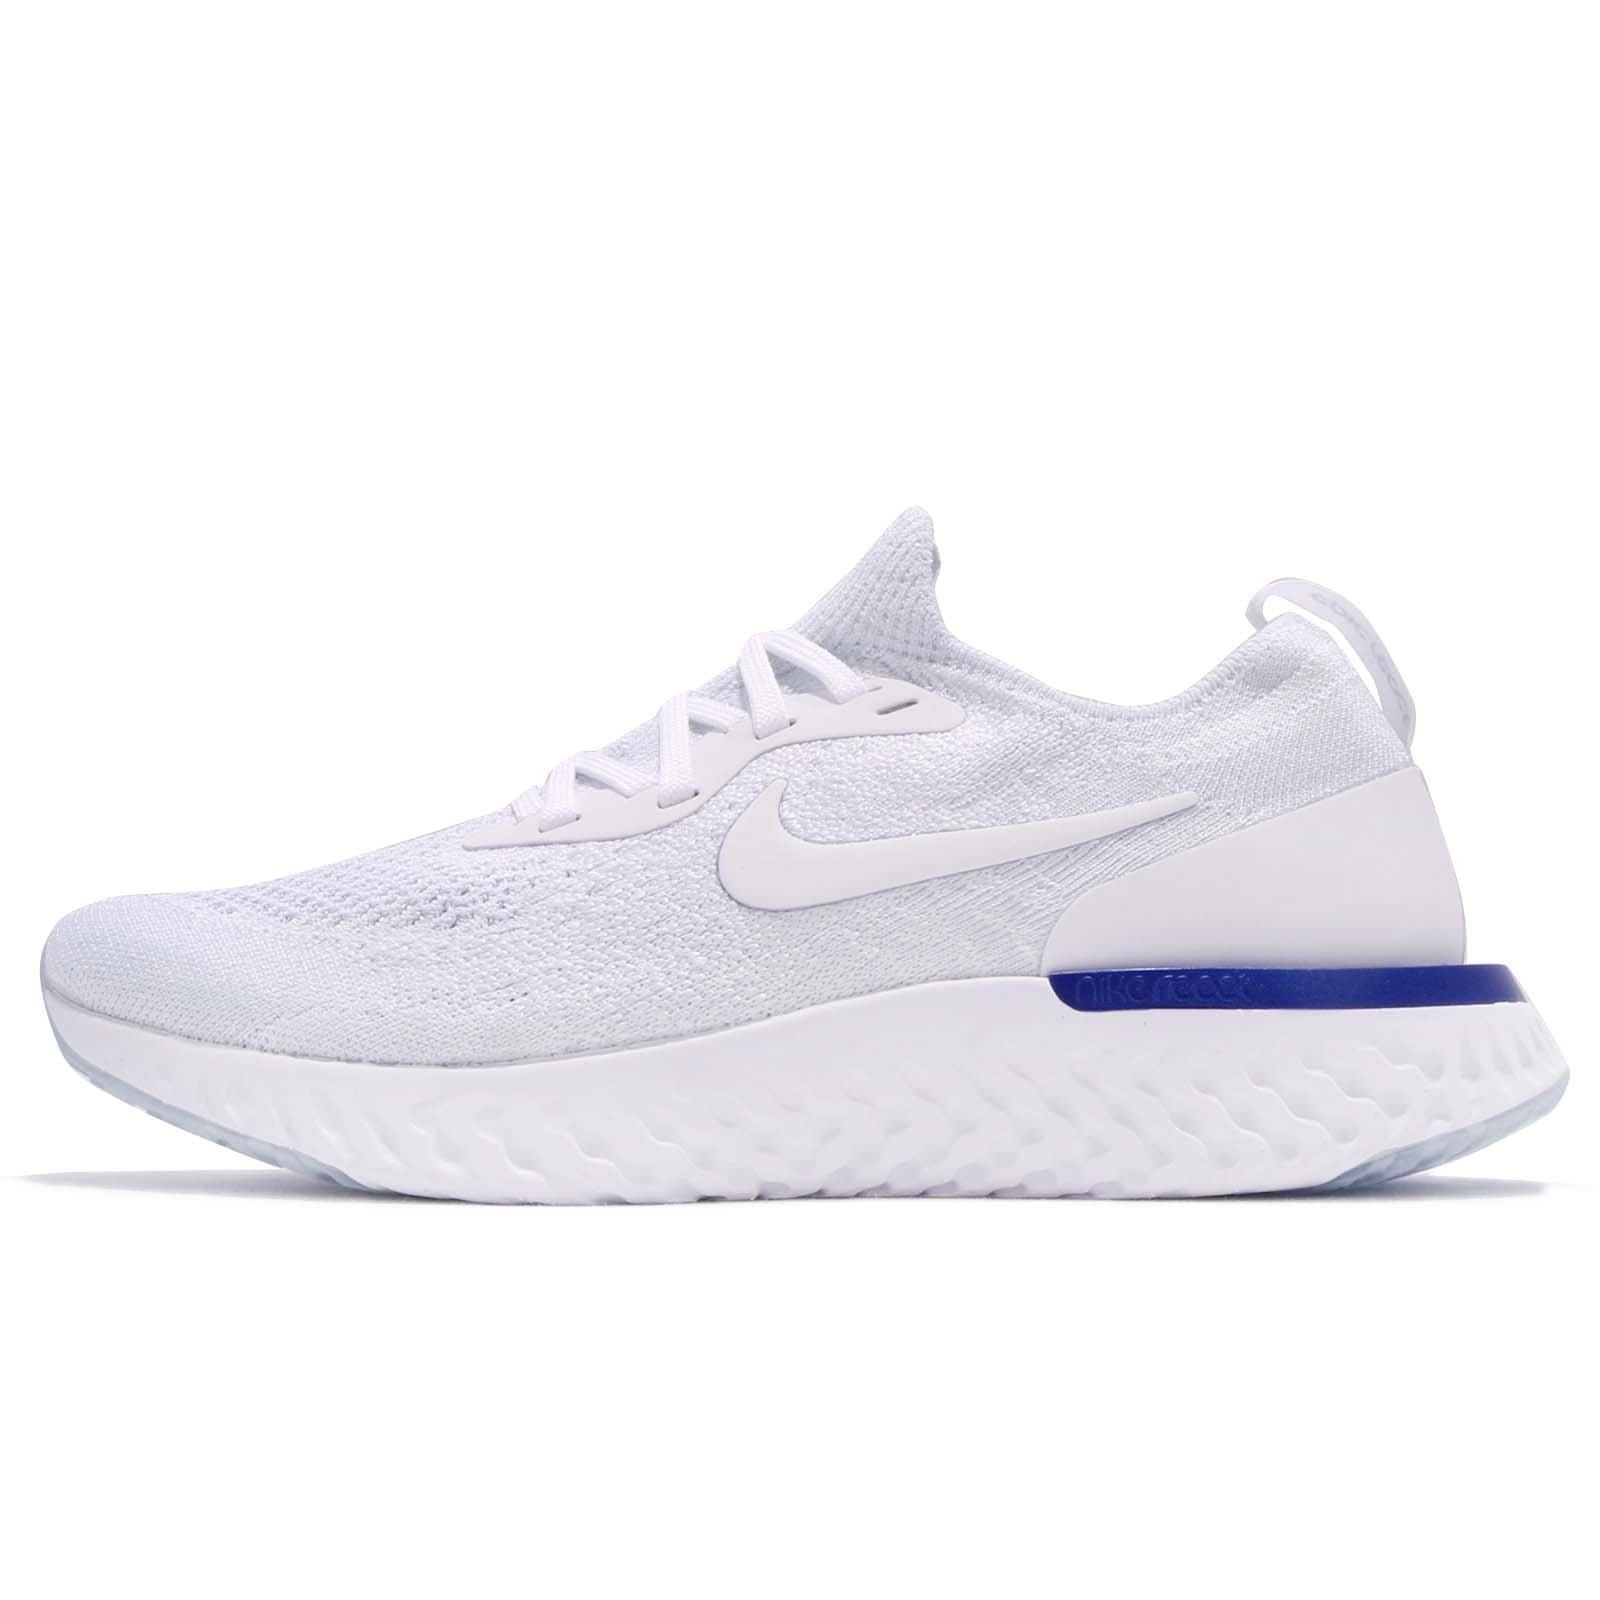 8790adc03504a Galleon - NIKE Womens Epic React Flyknit Running Shoes (7